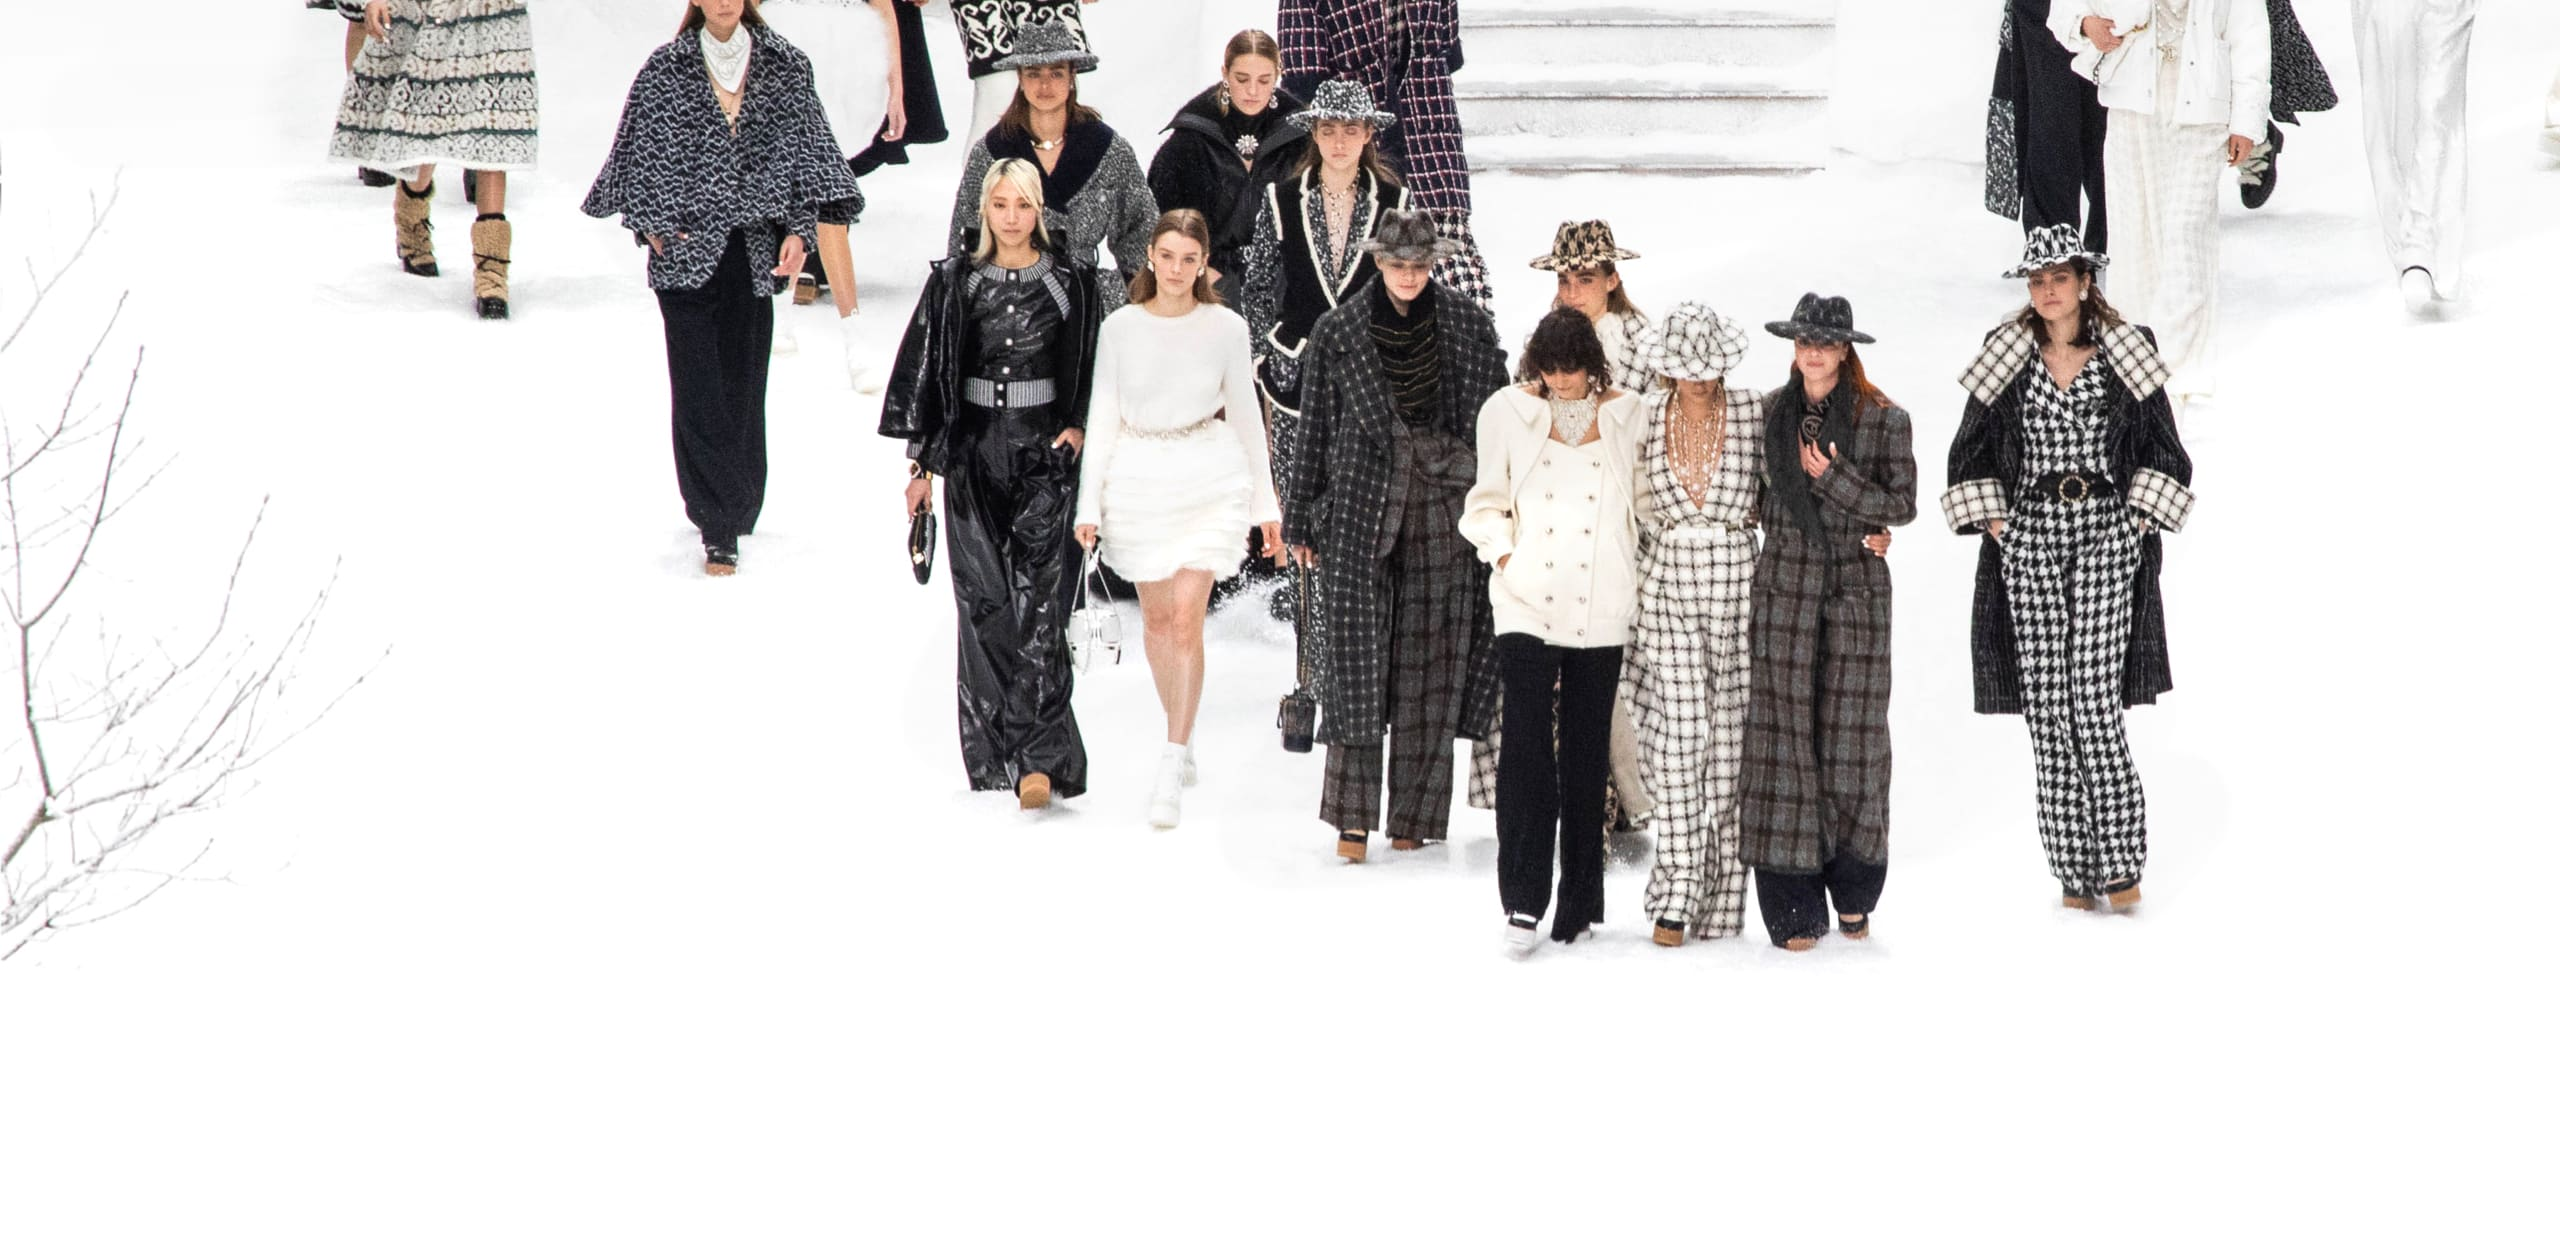 Fall Winter 2019 20 Ready To Wear Show Chanel